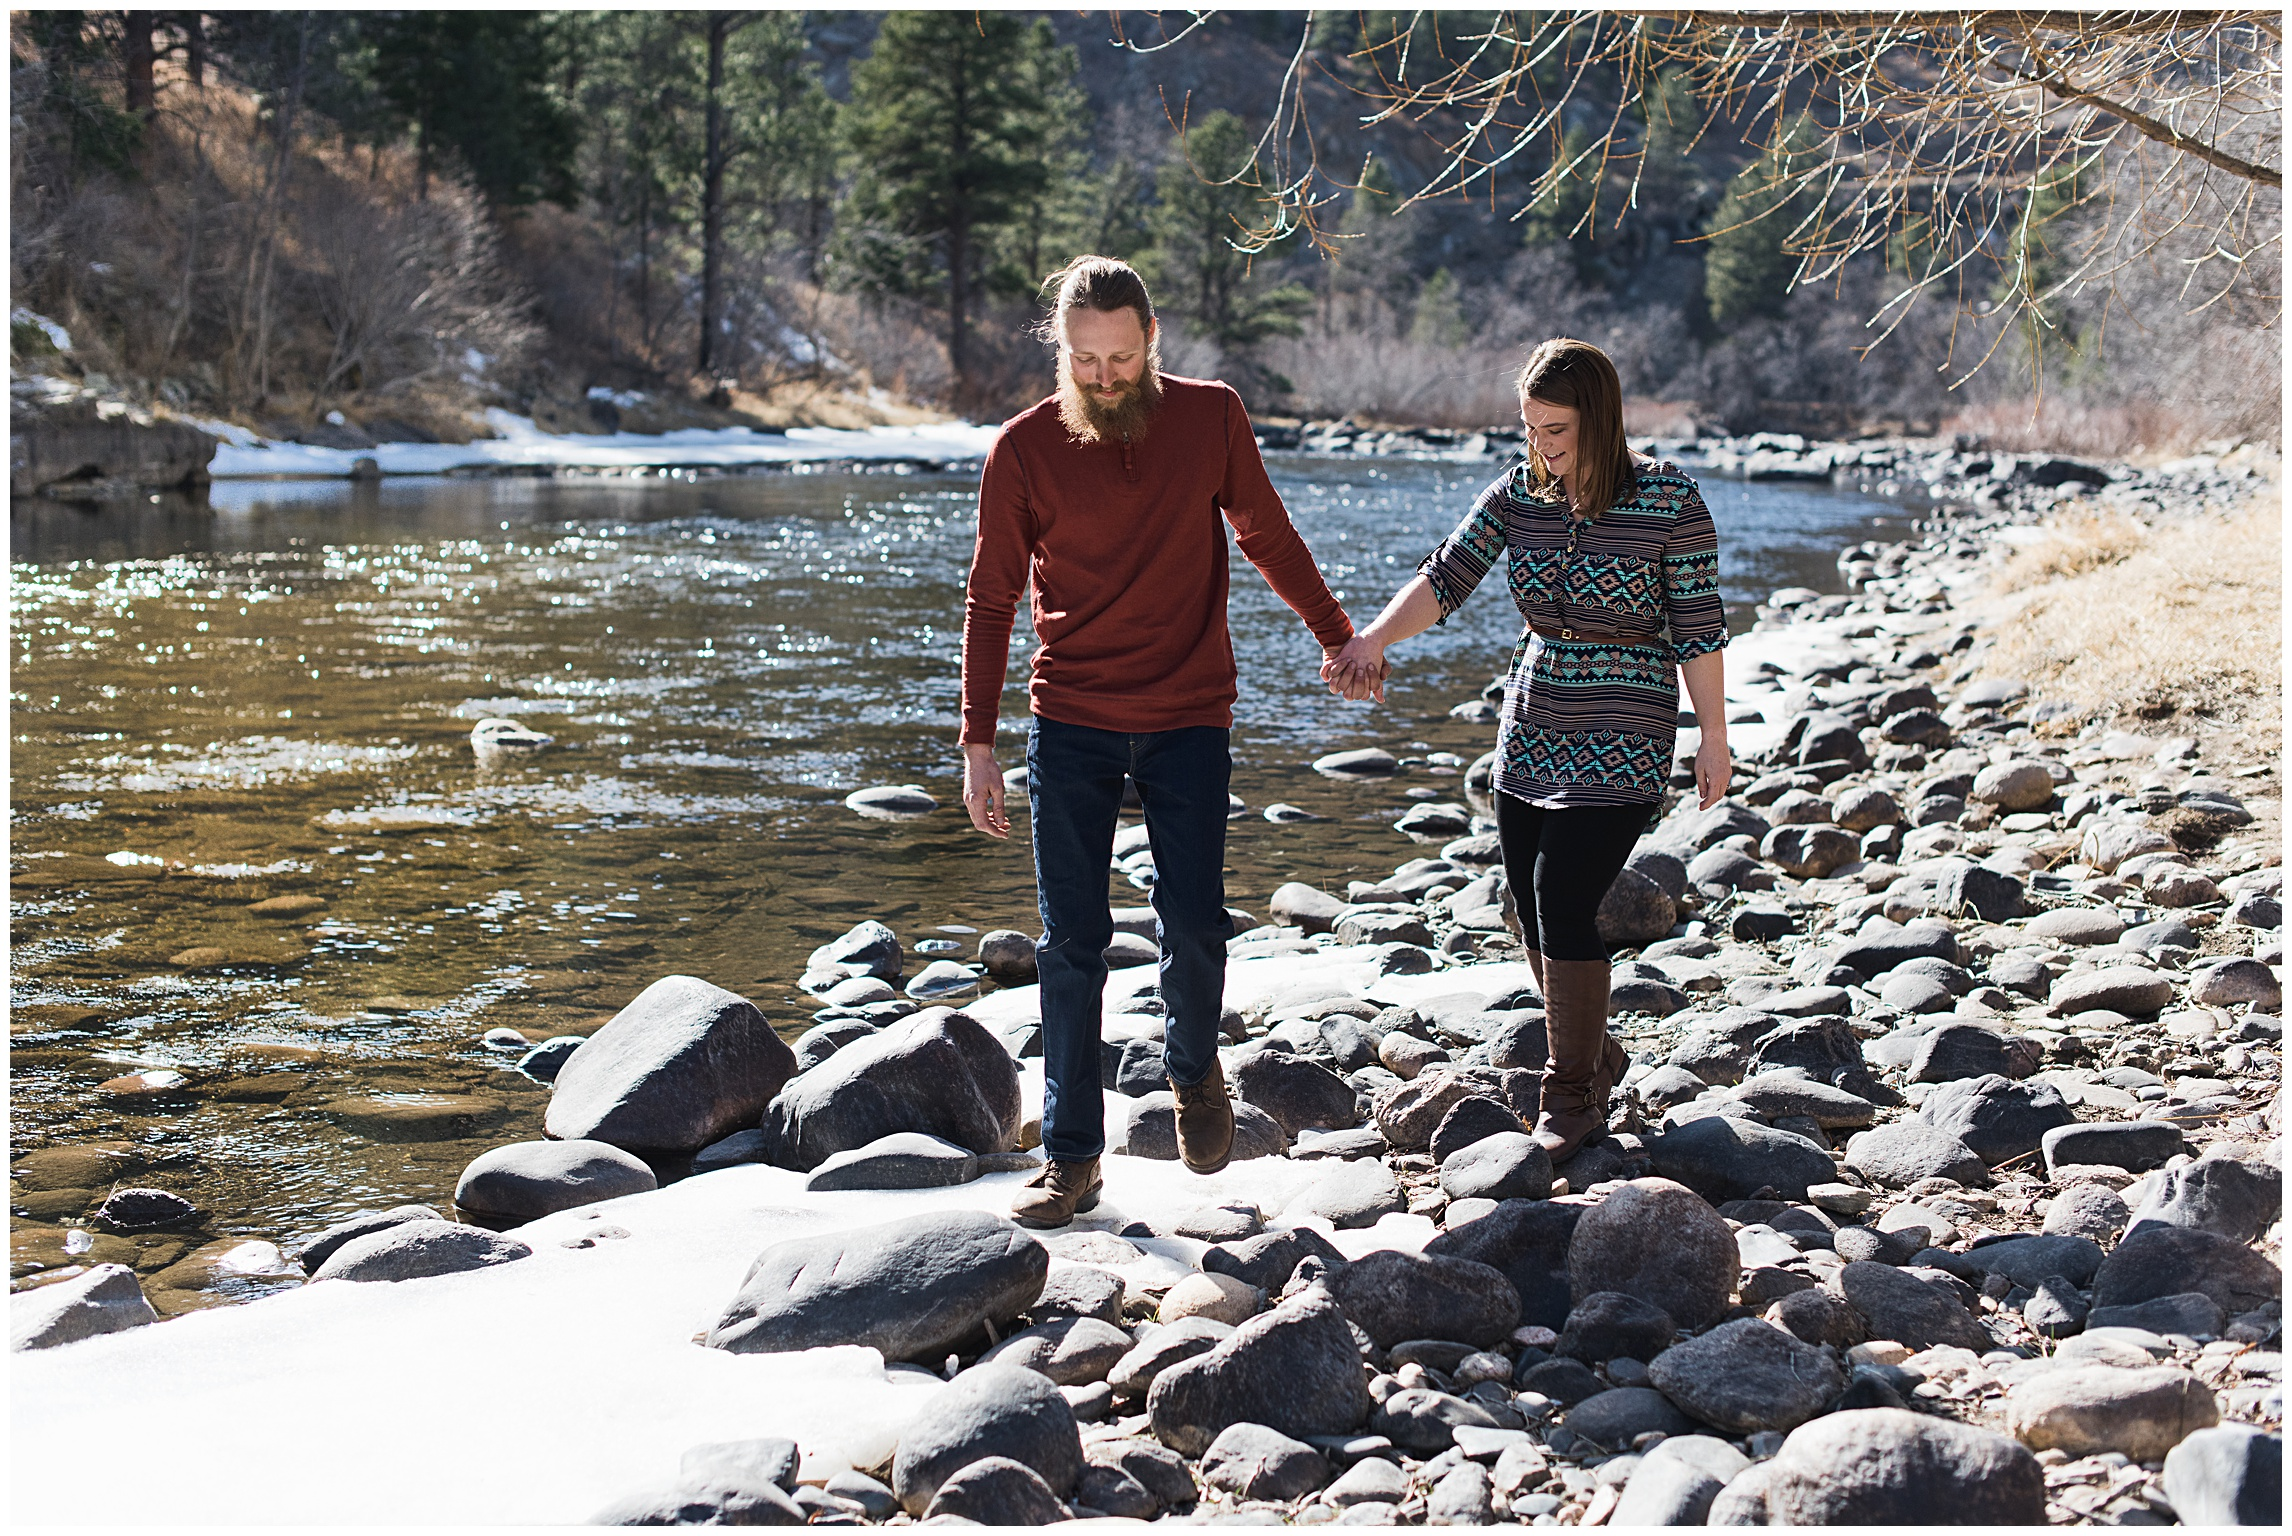 A young couple walk on the grey rocks next to a river on a sunny fall day. Engagement photography by Sonja Salzburg of Sonja K Photography.